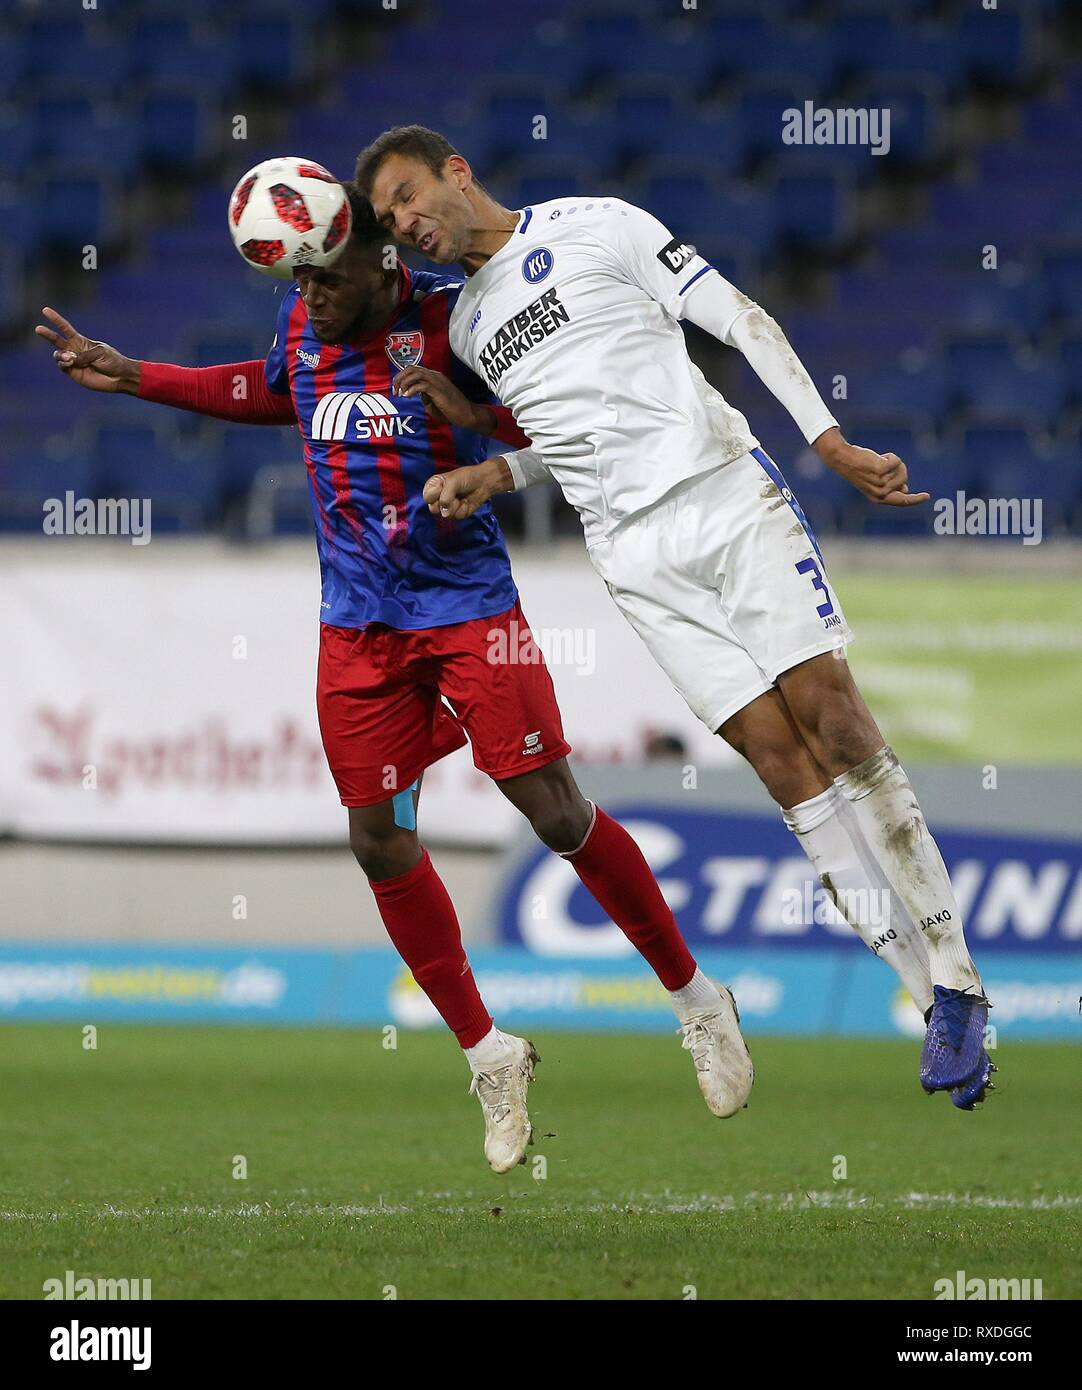 firo: 08.03.2019 Football, 3. Bundesliga, season 2018/2019 KFC Uerdingen 05 - Karlsruher SC Osaywe Osawe (# 35, KFC Uerdingen 05) in head duel with Daniel Gordon (# 3, Karlsruher SC) | usage worldwide - Stock Image